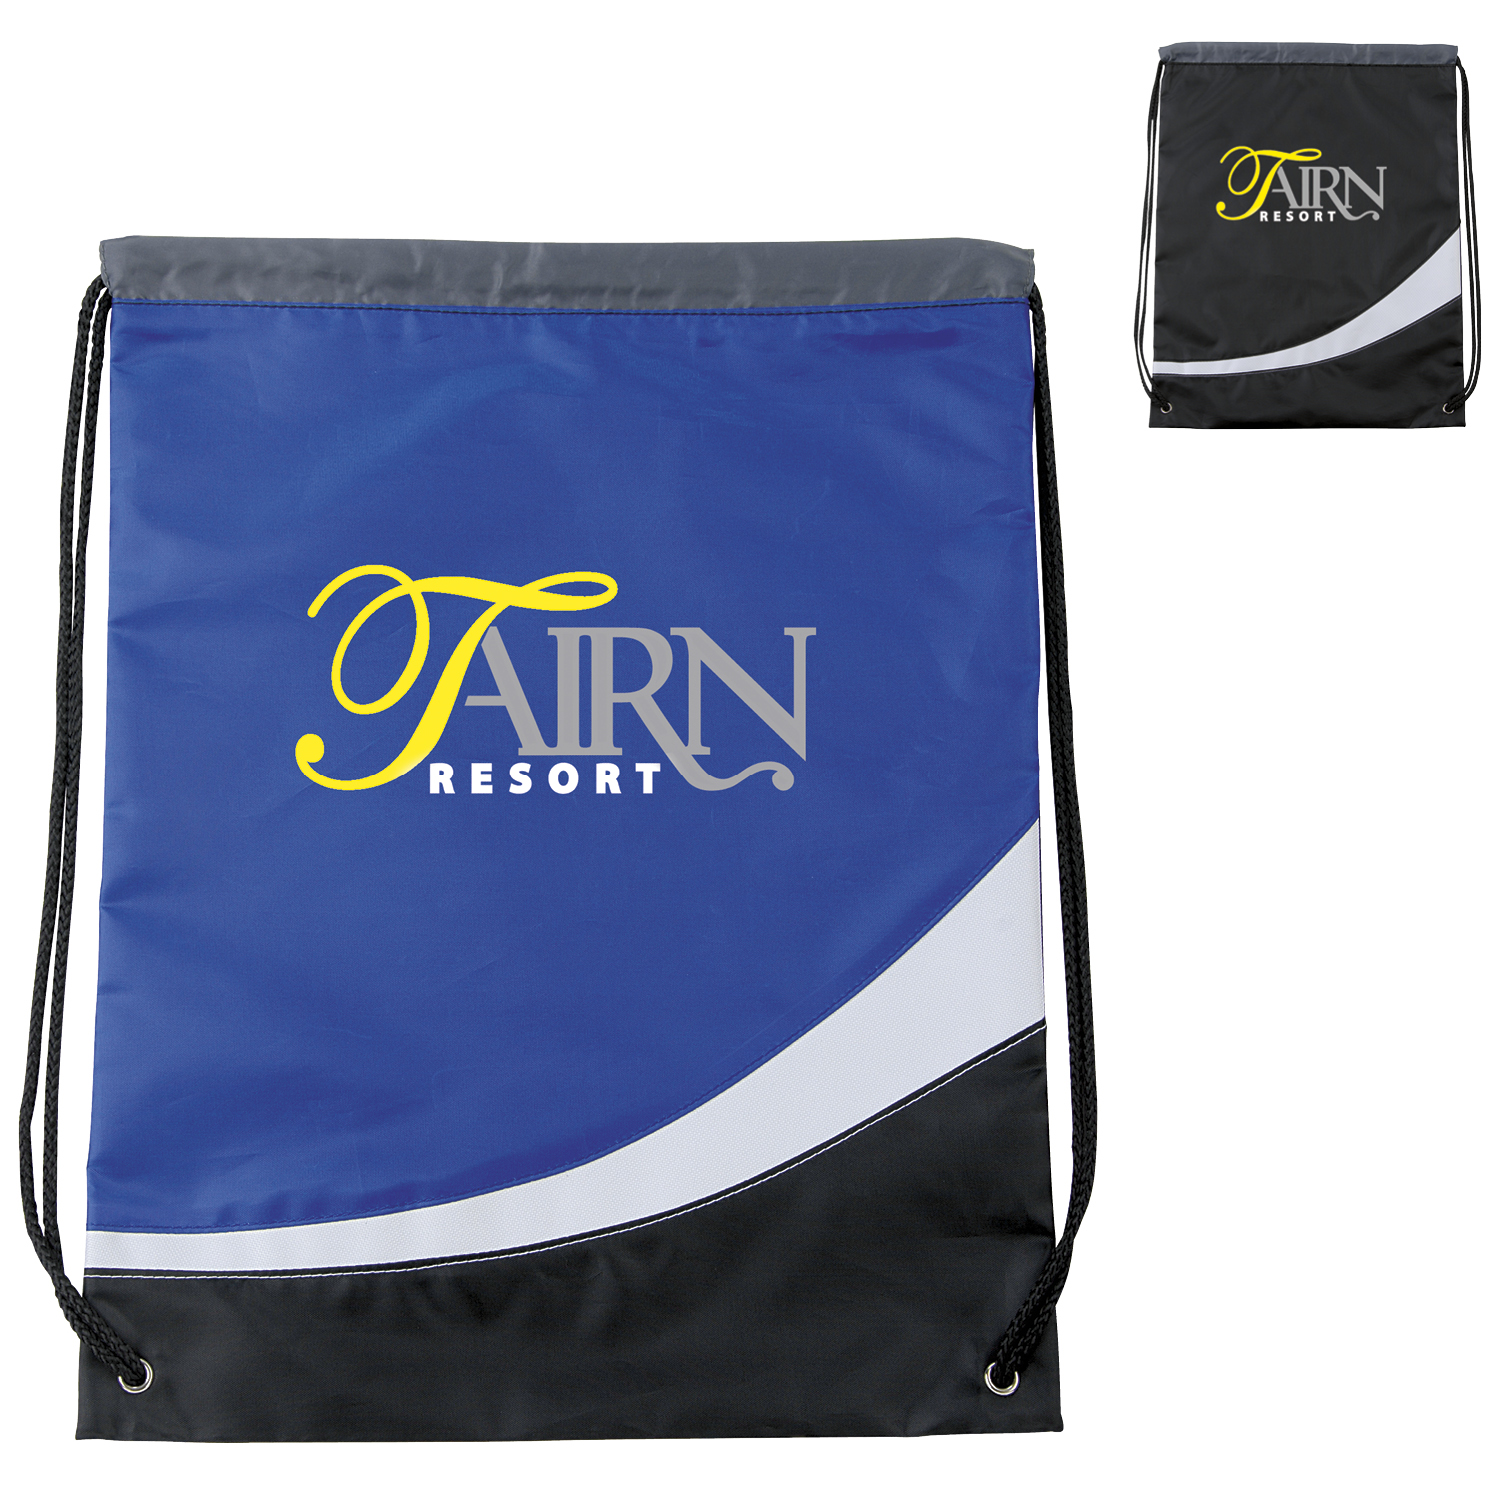 Atchison Curved Cinchpack Backpack - 1 Colour Imprint